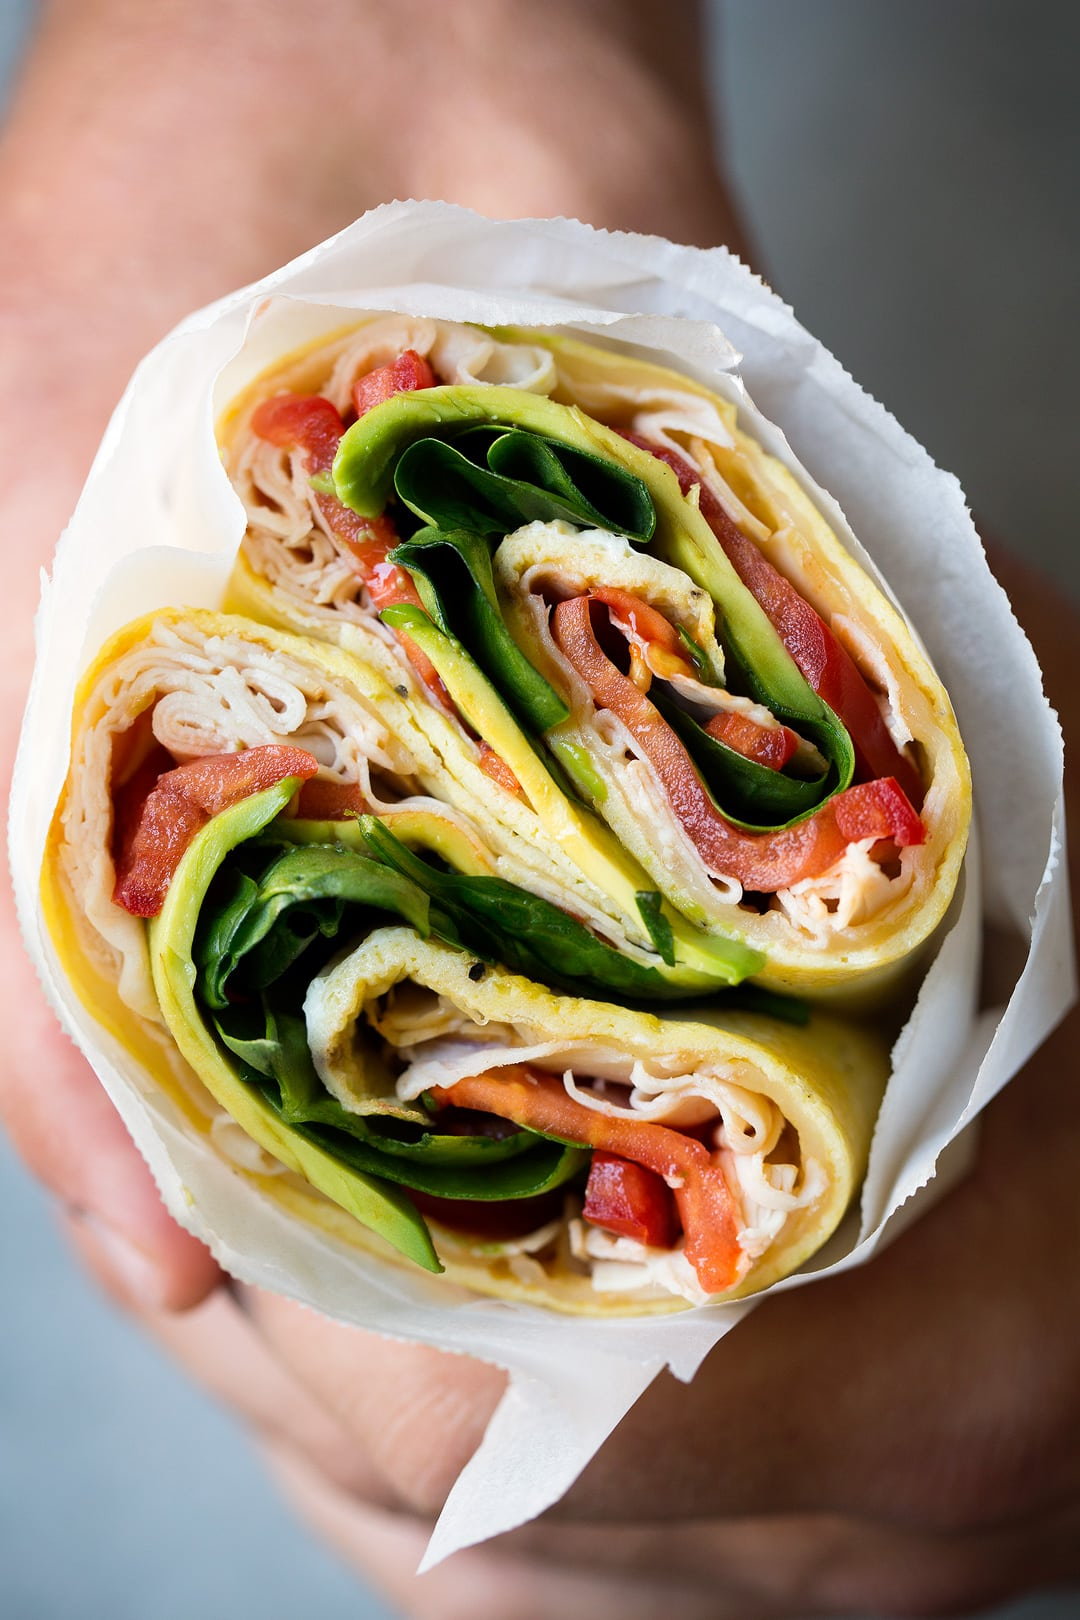 Egg Wrap Recipe with turkey, avocado, spinach, tomatoes and swiss